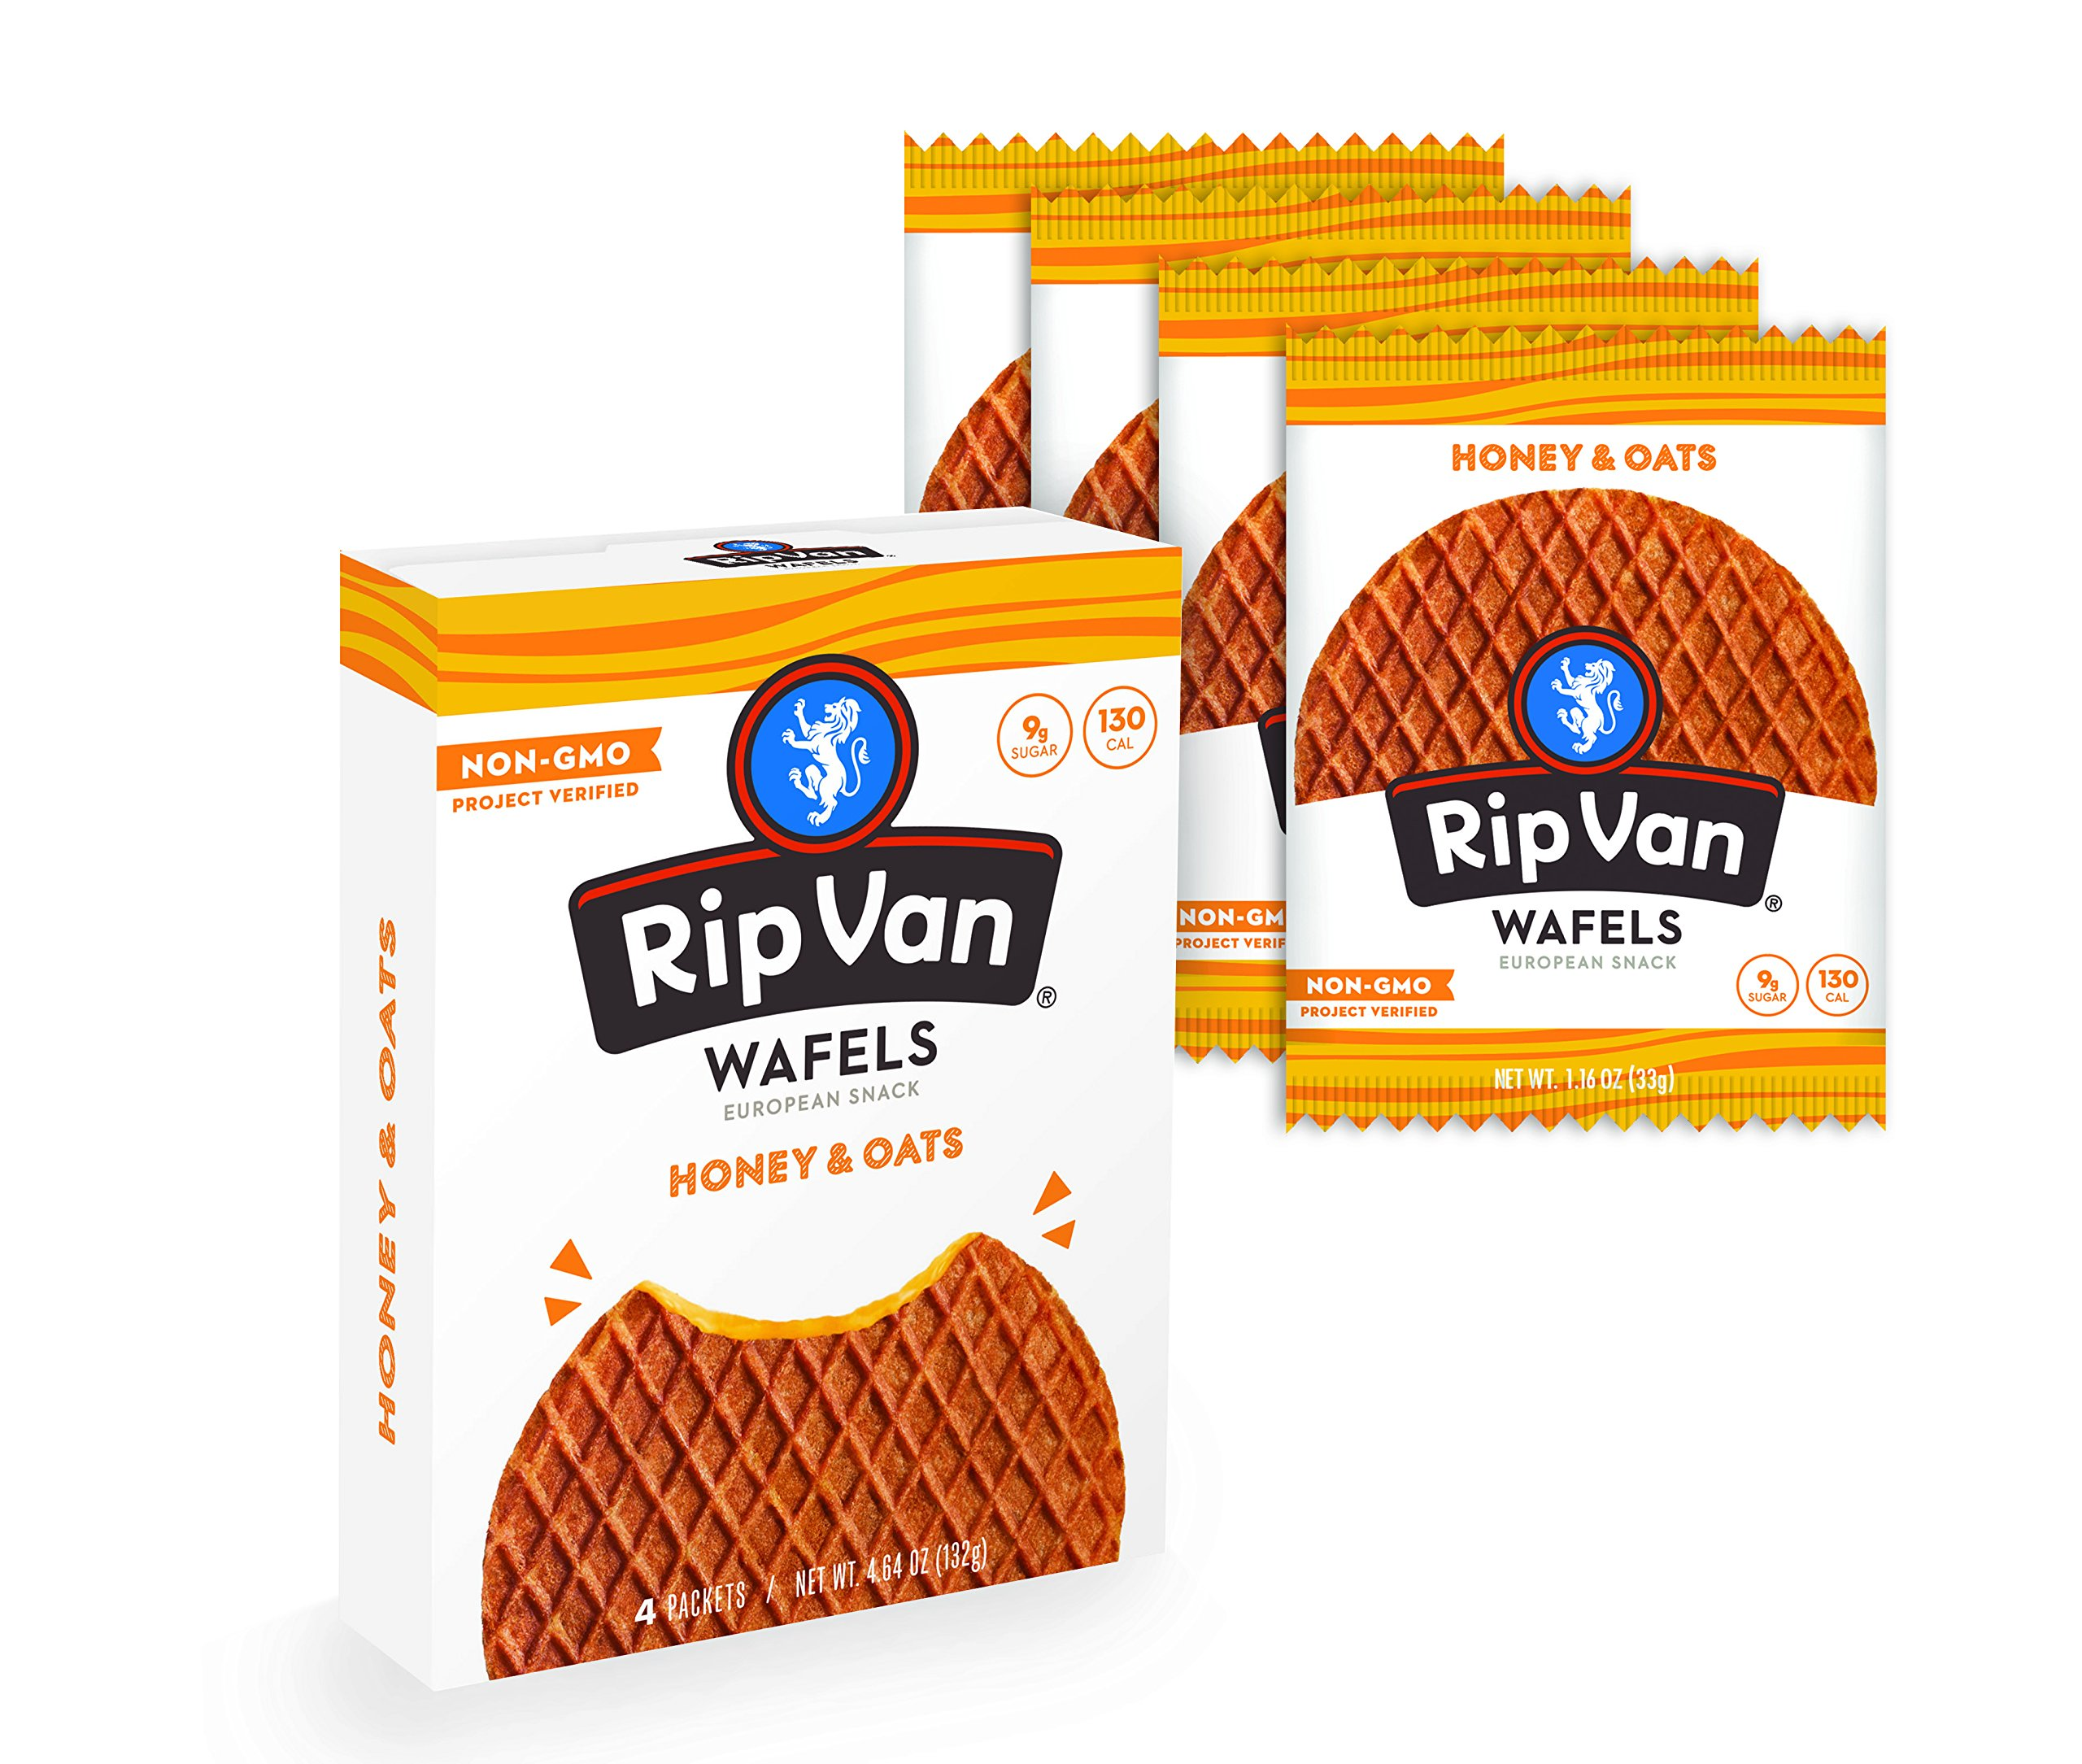 Rip Van Wafels Snack Wafels, Honey and Oats, 4 Count